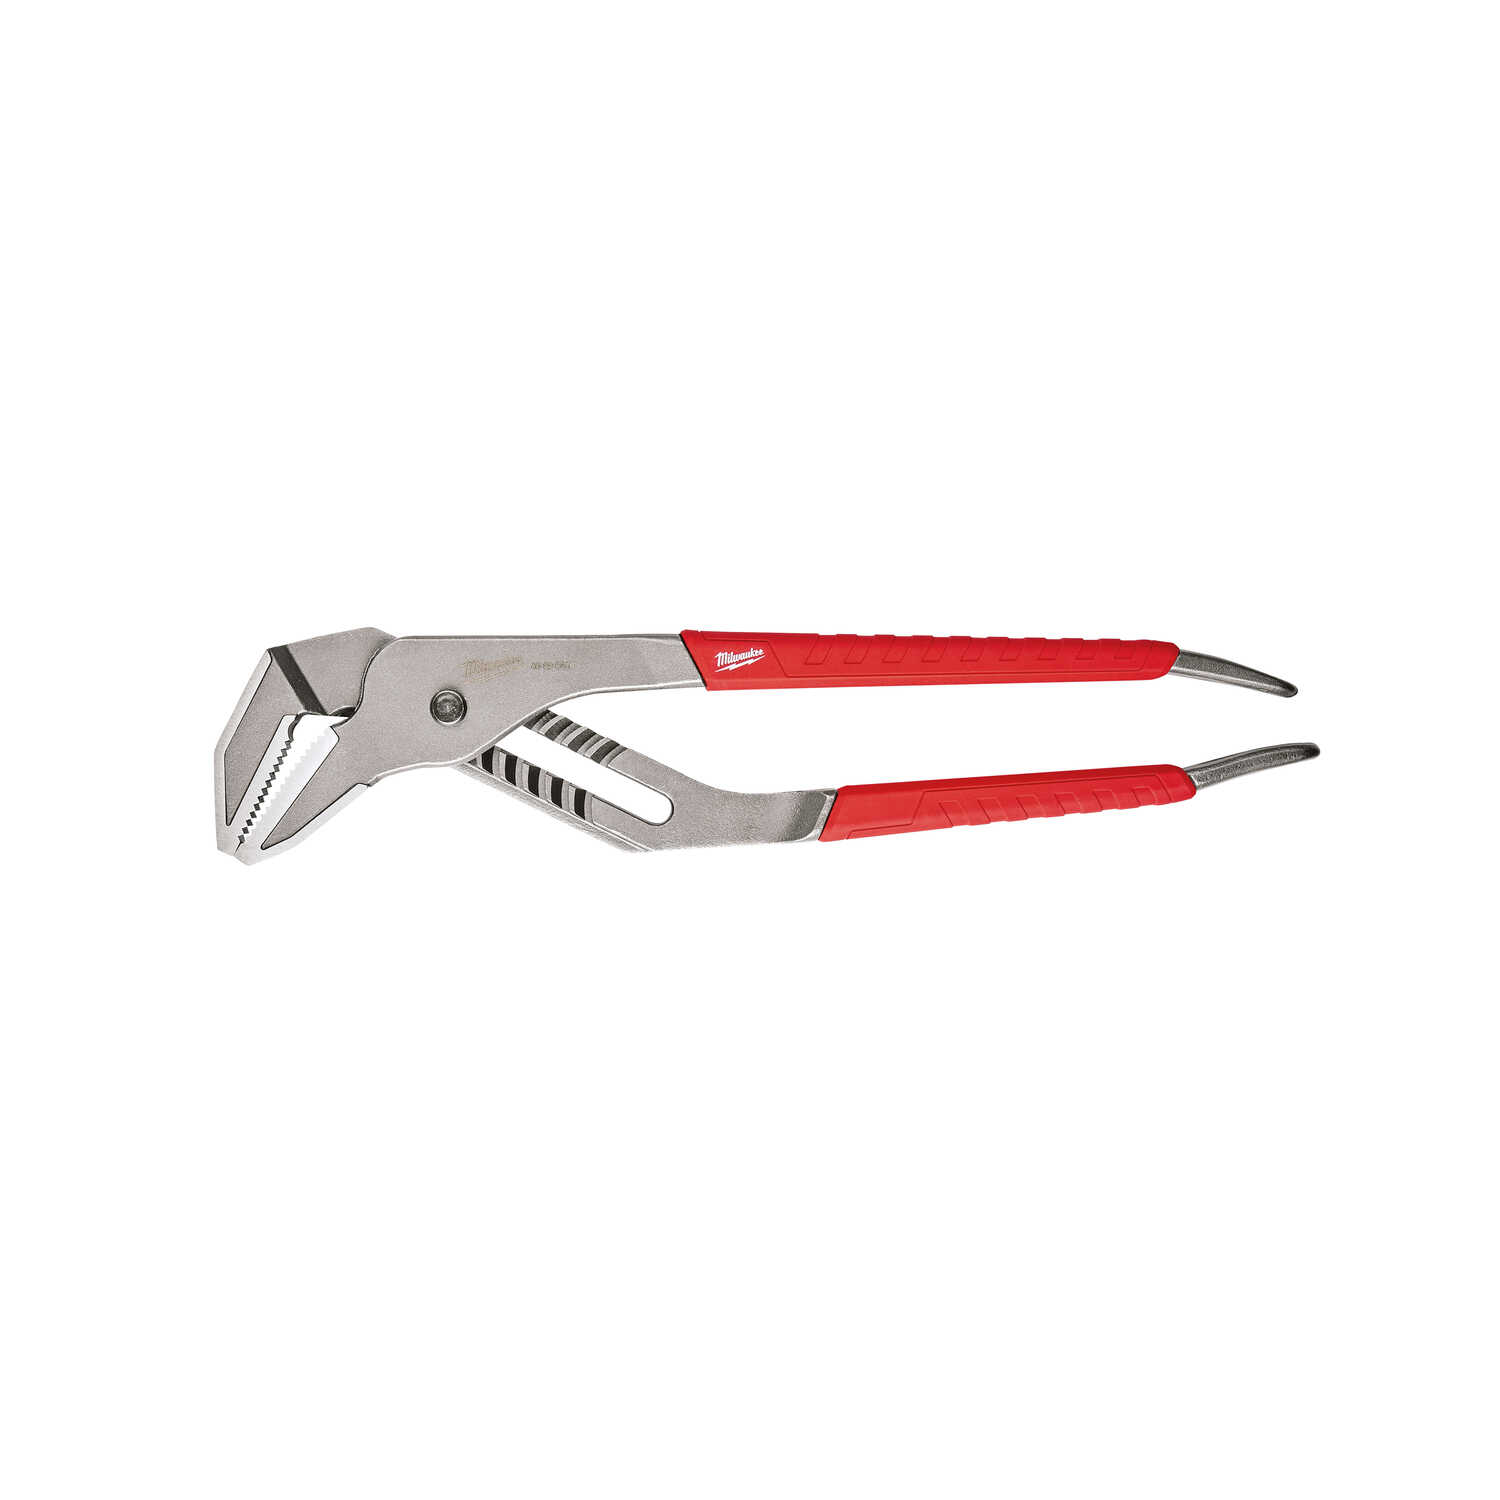 Milwaukee  REAM & PUNCH  16 in. Forged Alloy Steel  Slip Joint Pliers  Red  1 pk